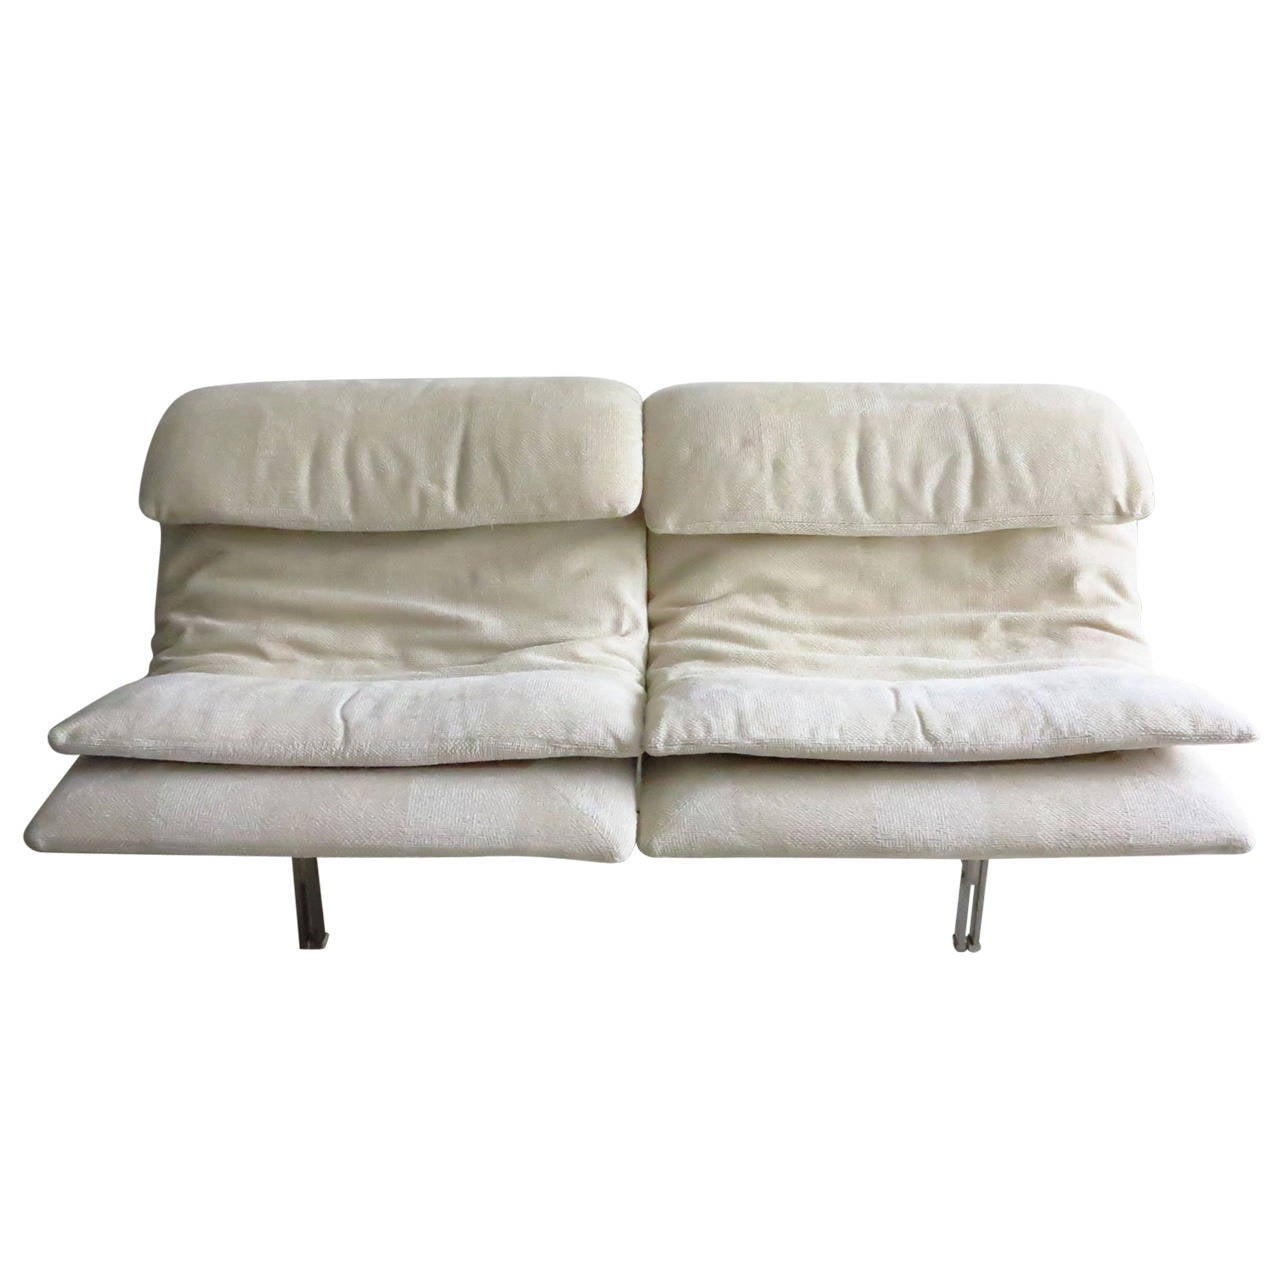 Giovanni offredi for saporiti sofa settee for sale at for Settees for sale